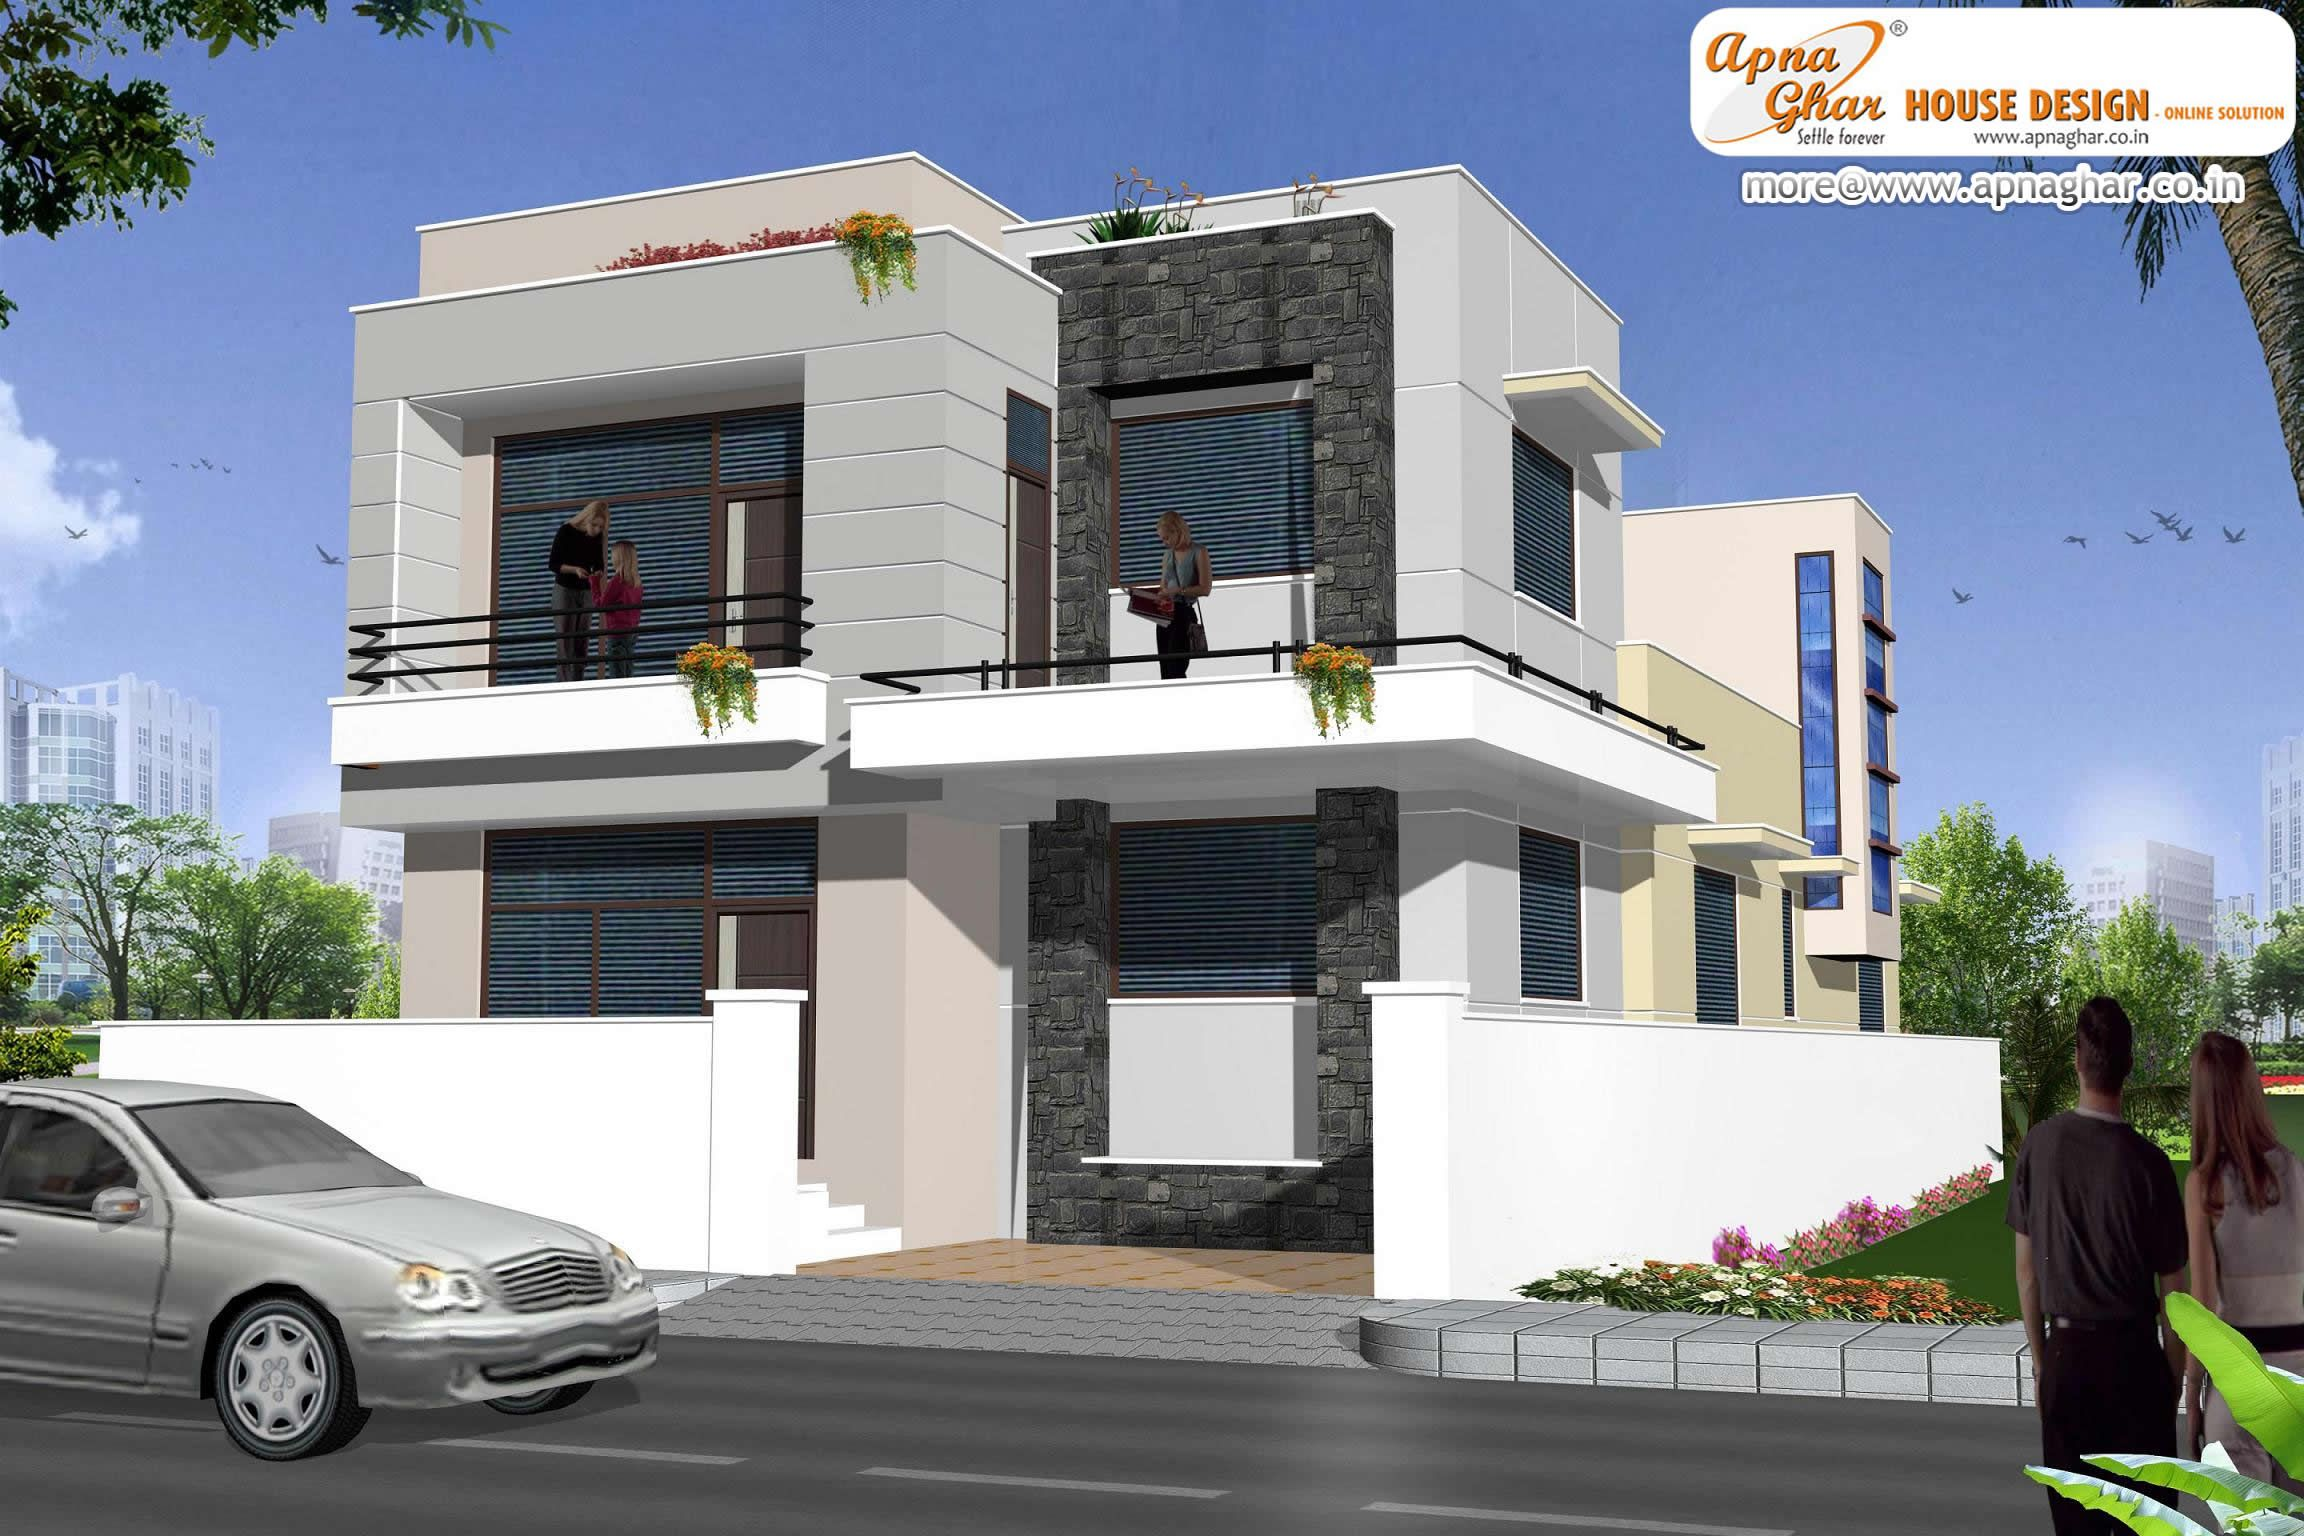 Modern duplex 2 floor house design area 198m2 9m x Duplex layouts